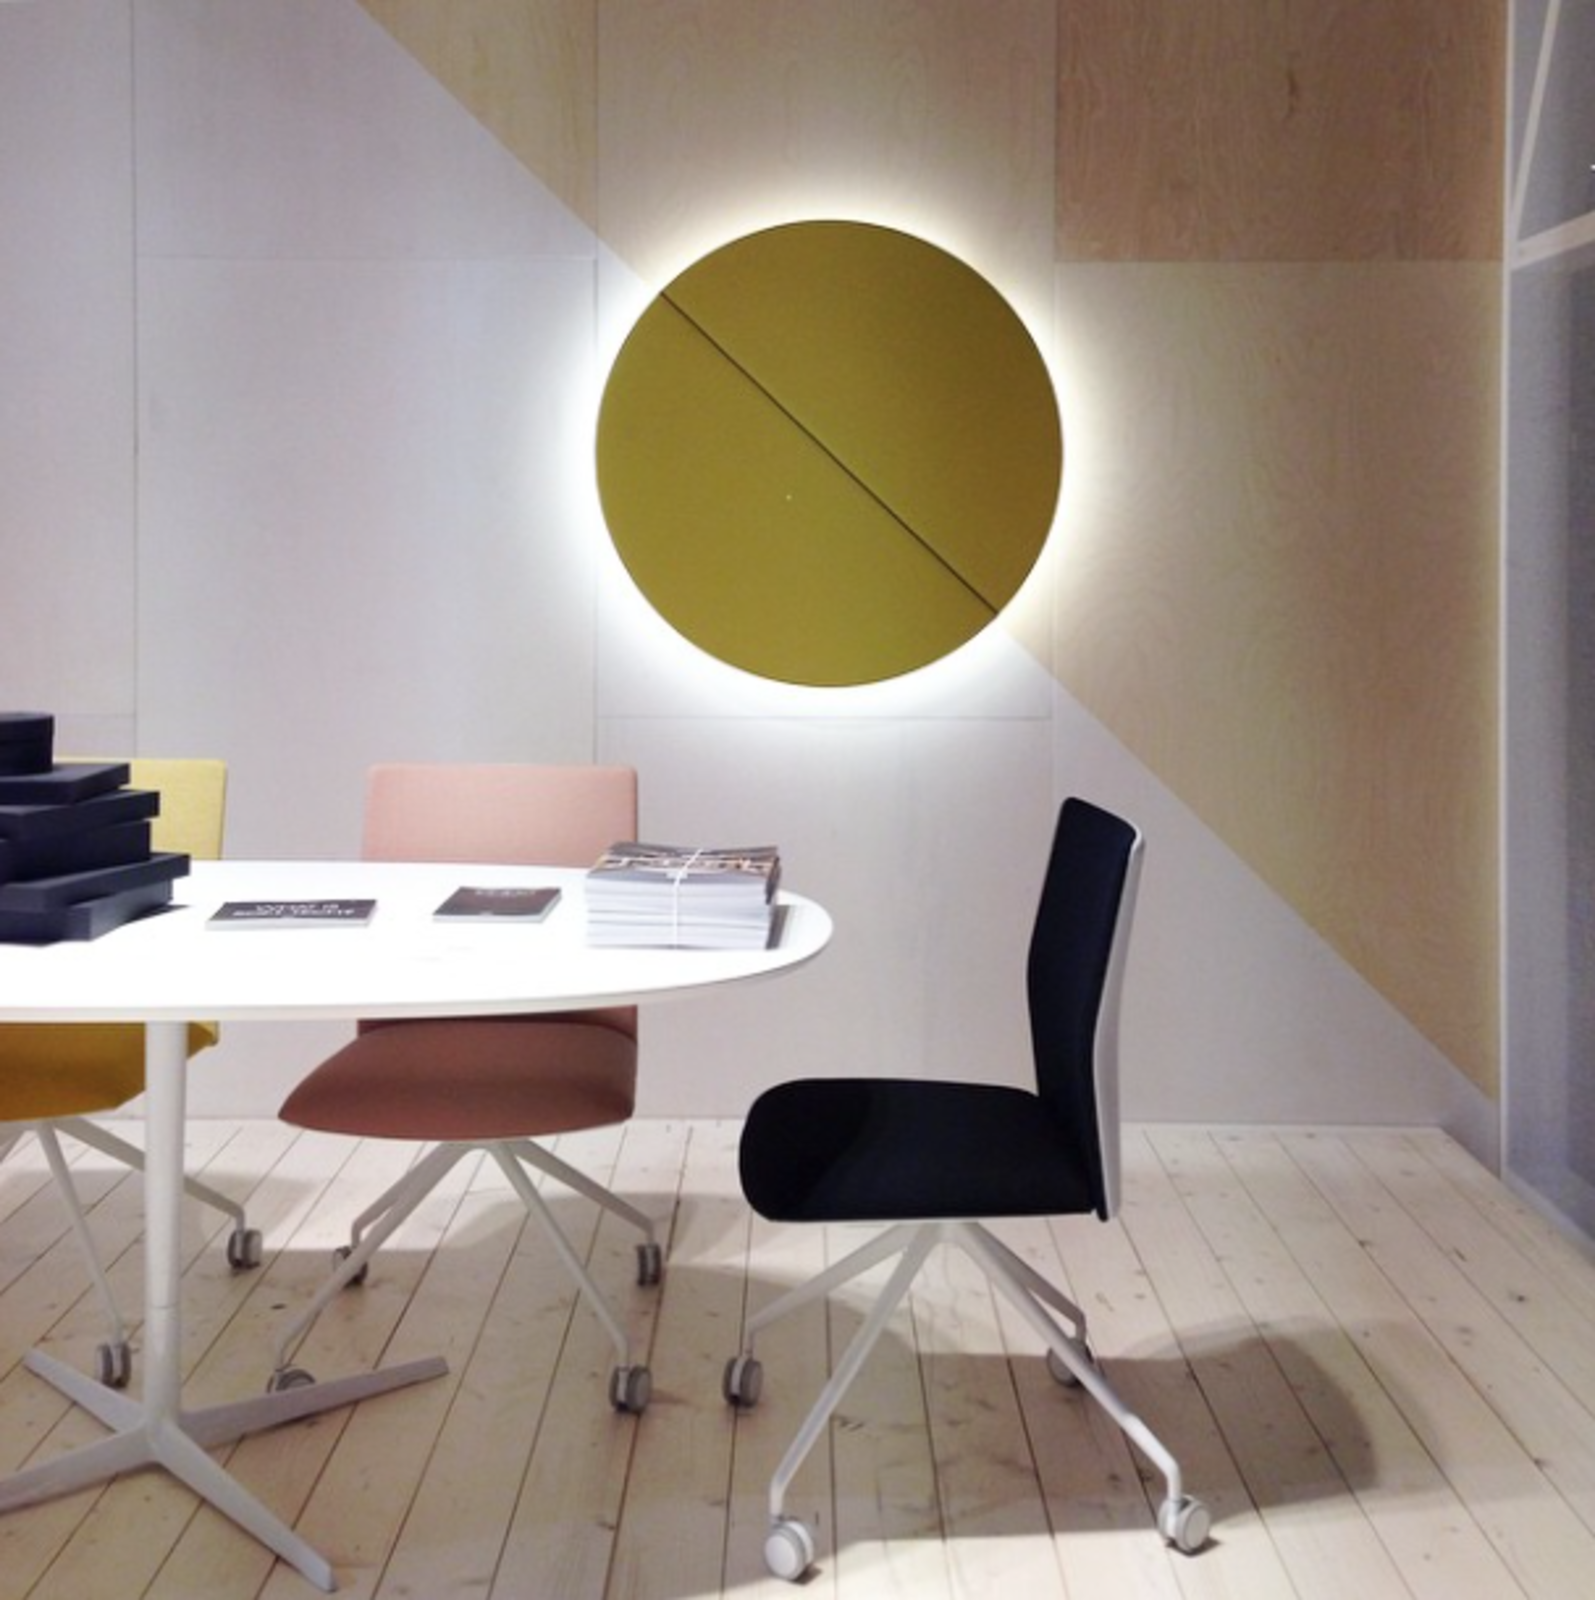 Stealth is the name of the game at @ArperSPA where an wall-mounted acoustic panel hides a speaker and lighting and the new task chairs discreetly integrate adjustment handles into the seat's base.  Editors' Picks from Salone del Mobile 2015: Day One by Dwell